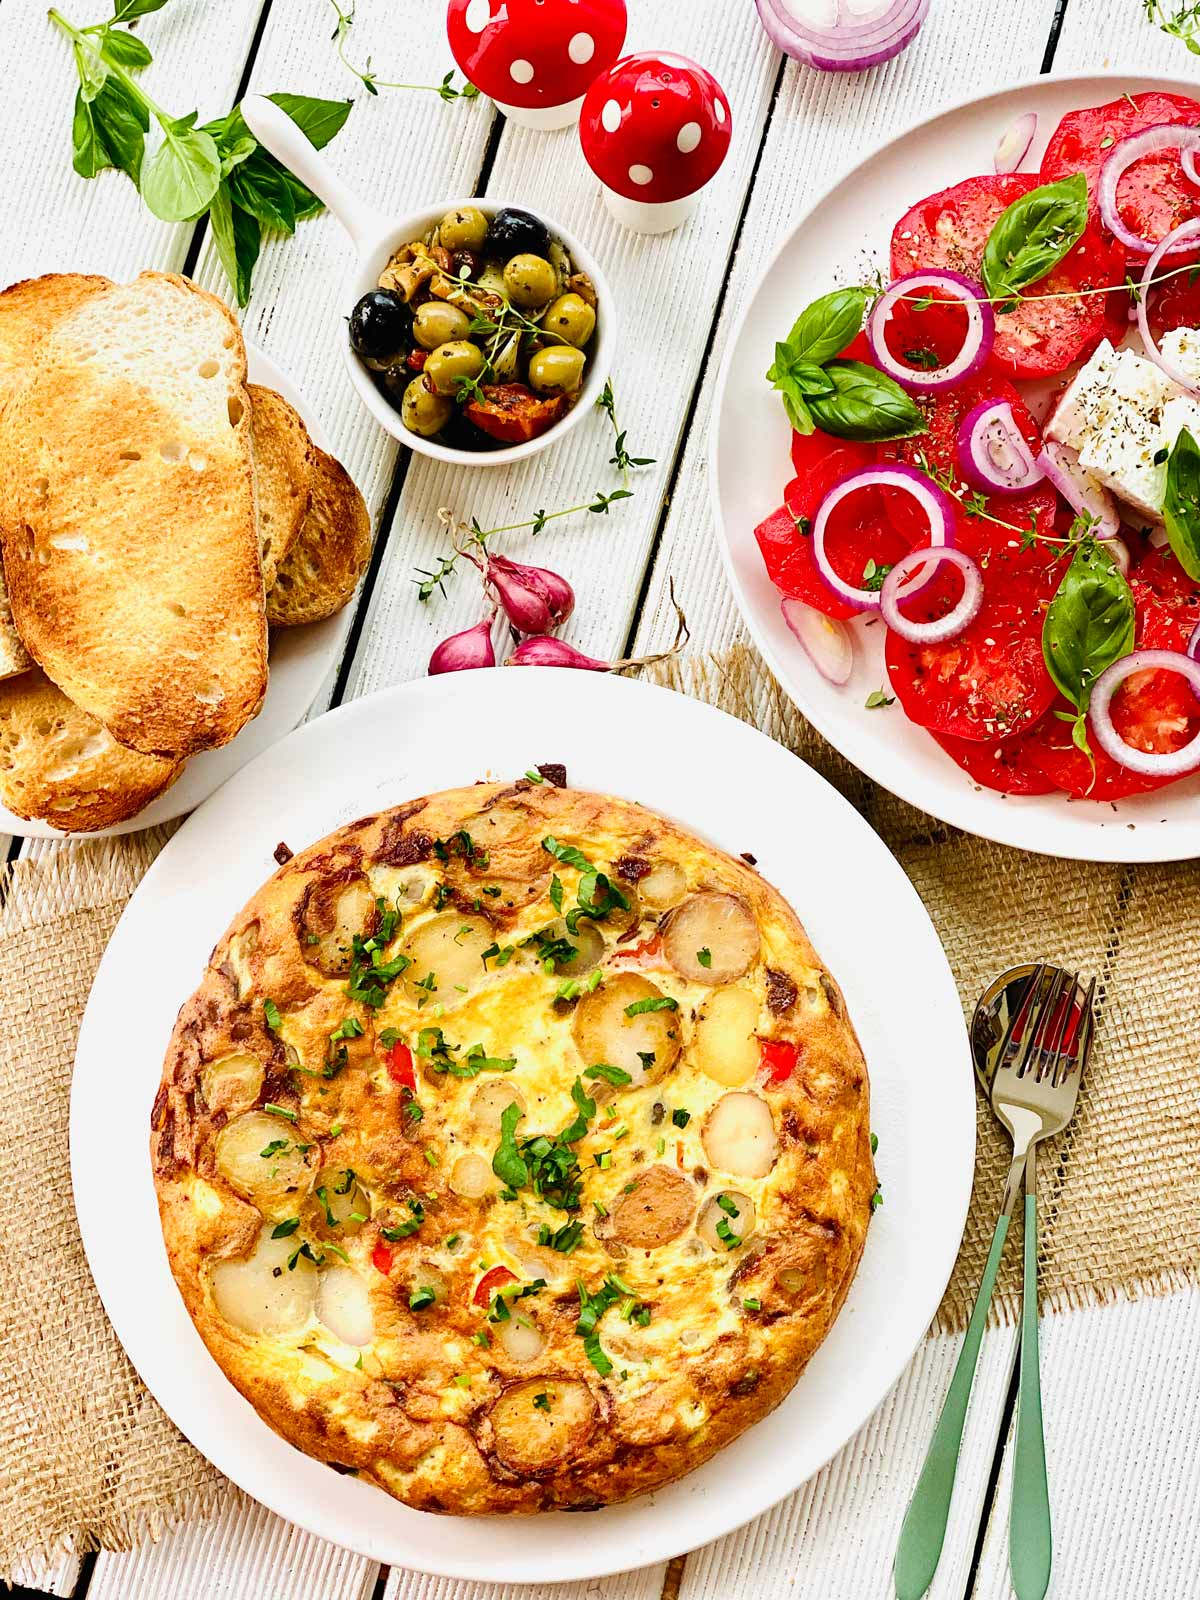 Spanish tortilla on a white plate, tomato salad on a white plate on the right mixed olives on top and toasted bread slices on smaller plate on the left